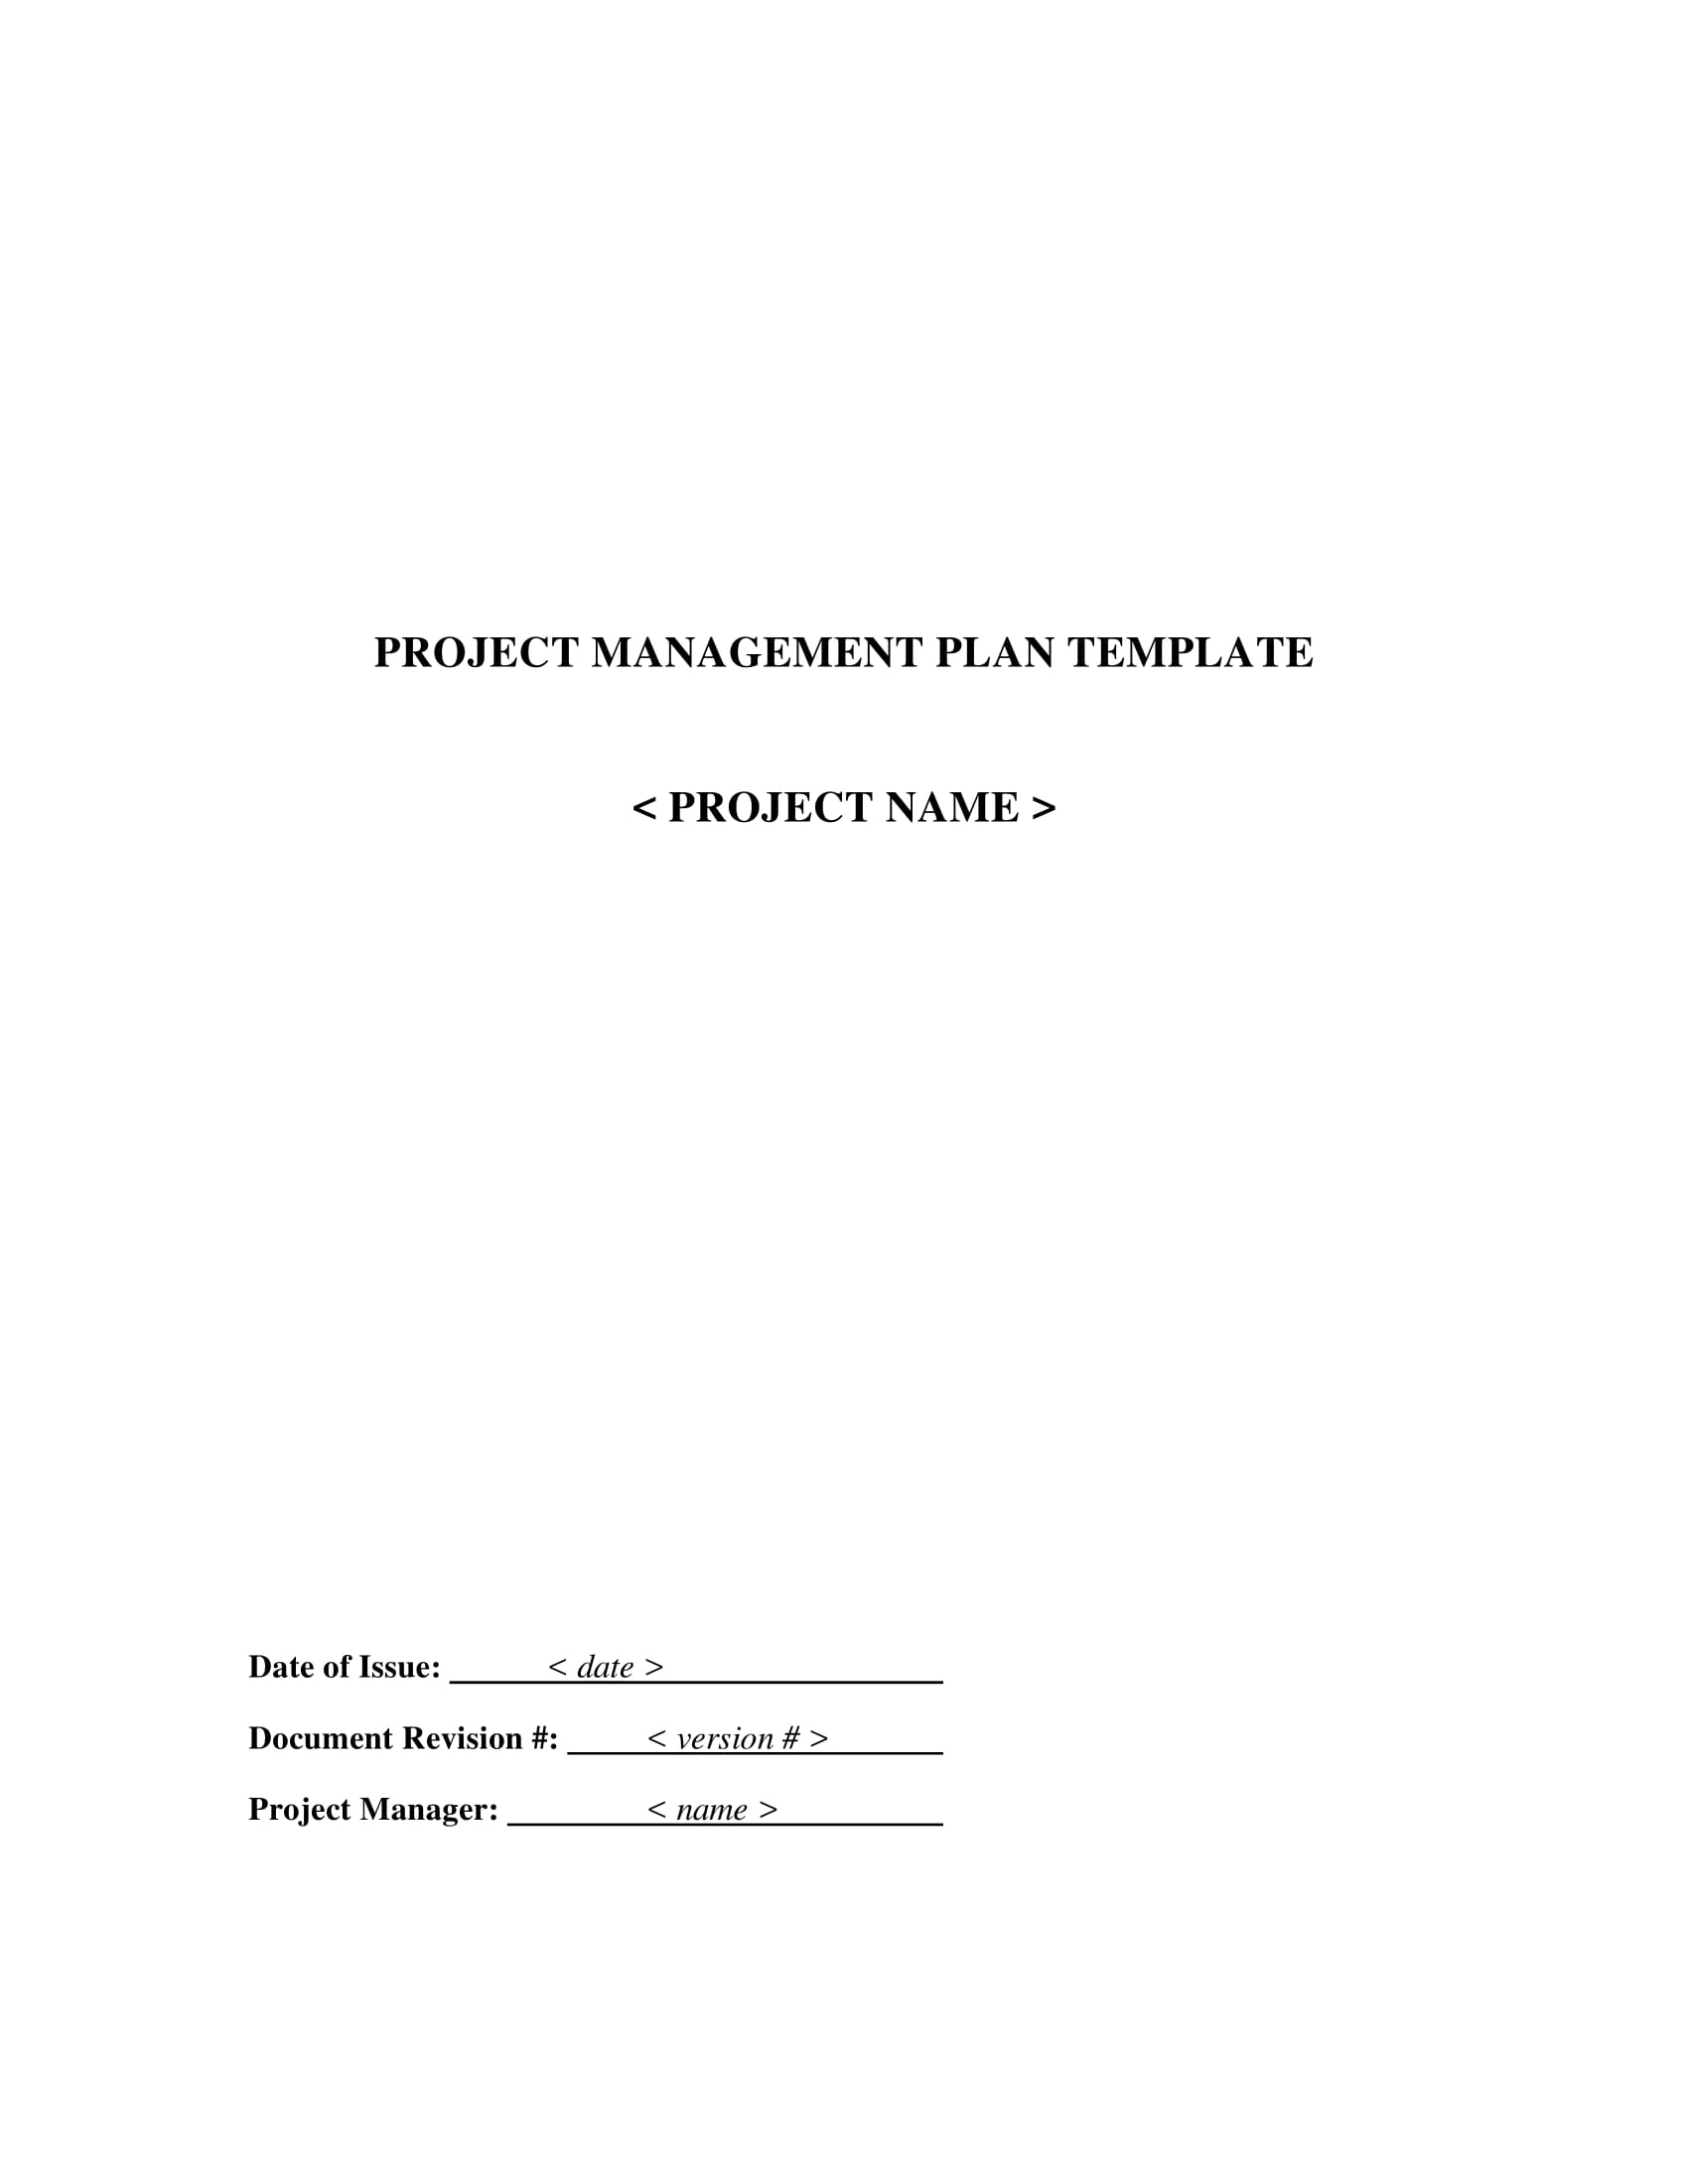 basic project management plan template example 01